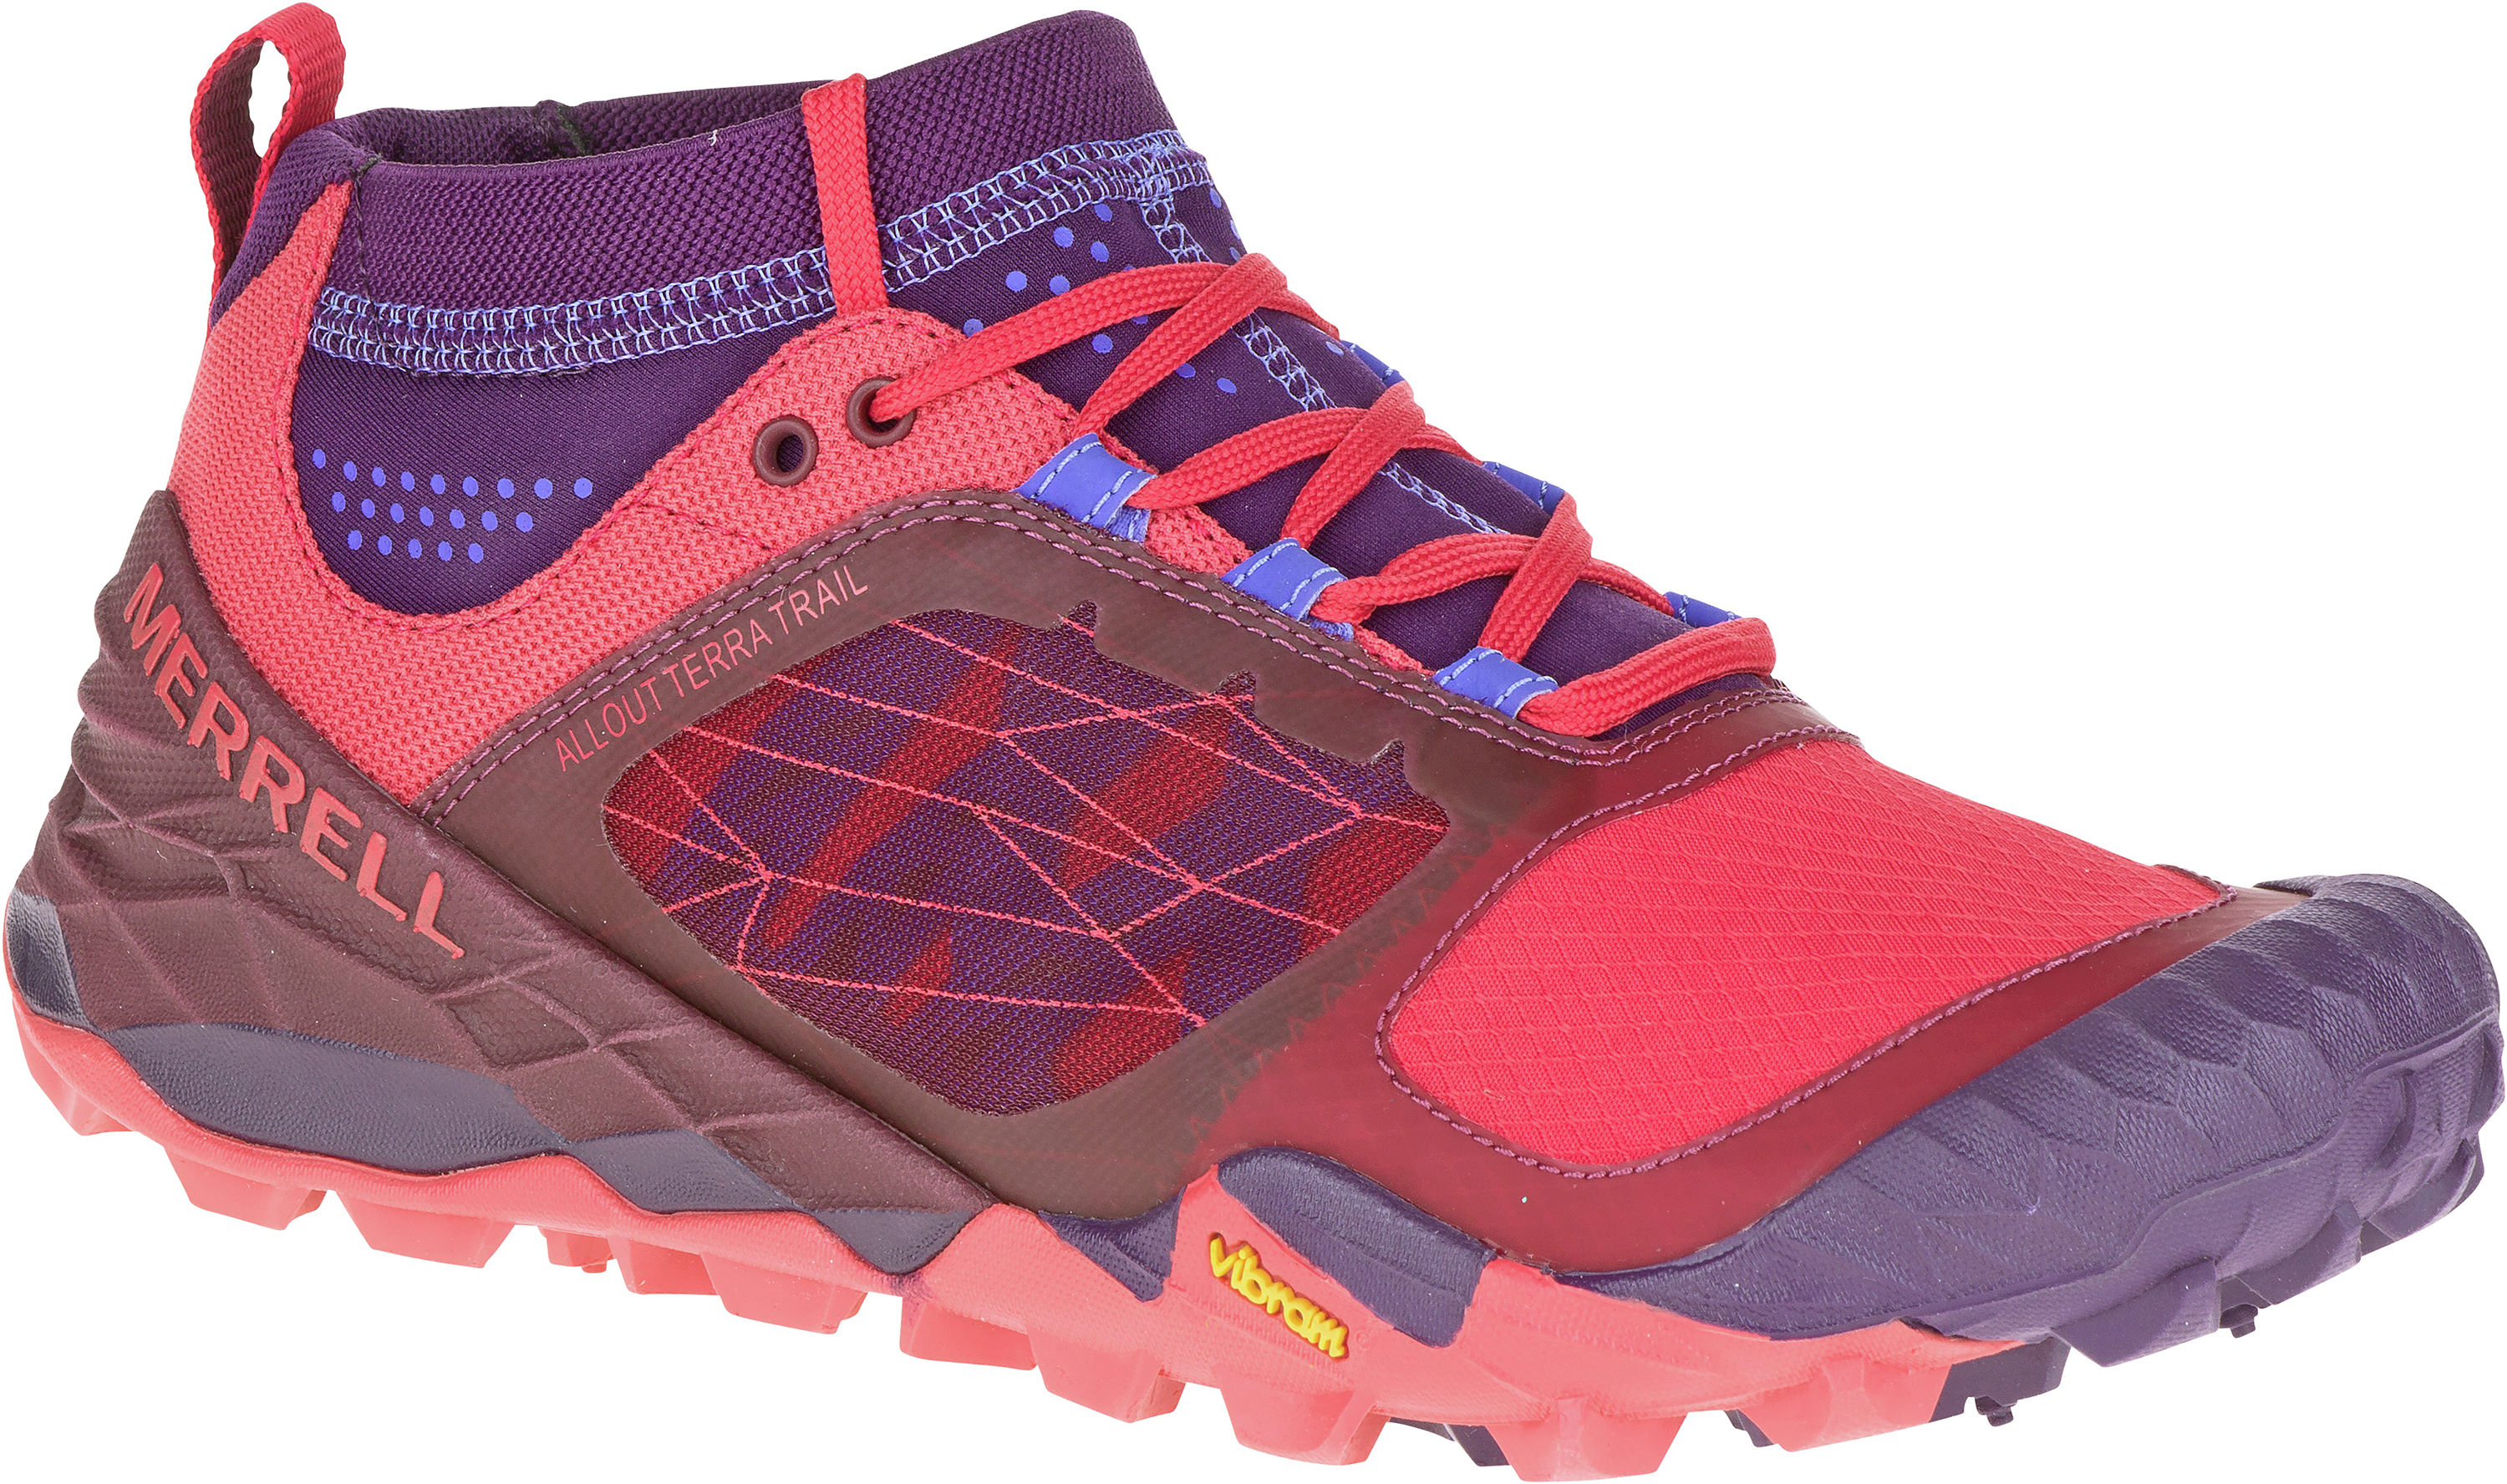 Zapatillas para mujer Merrell All Out Terra Trail (OI15)